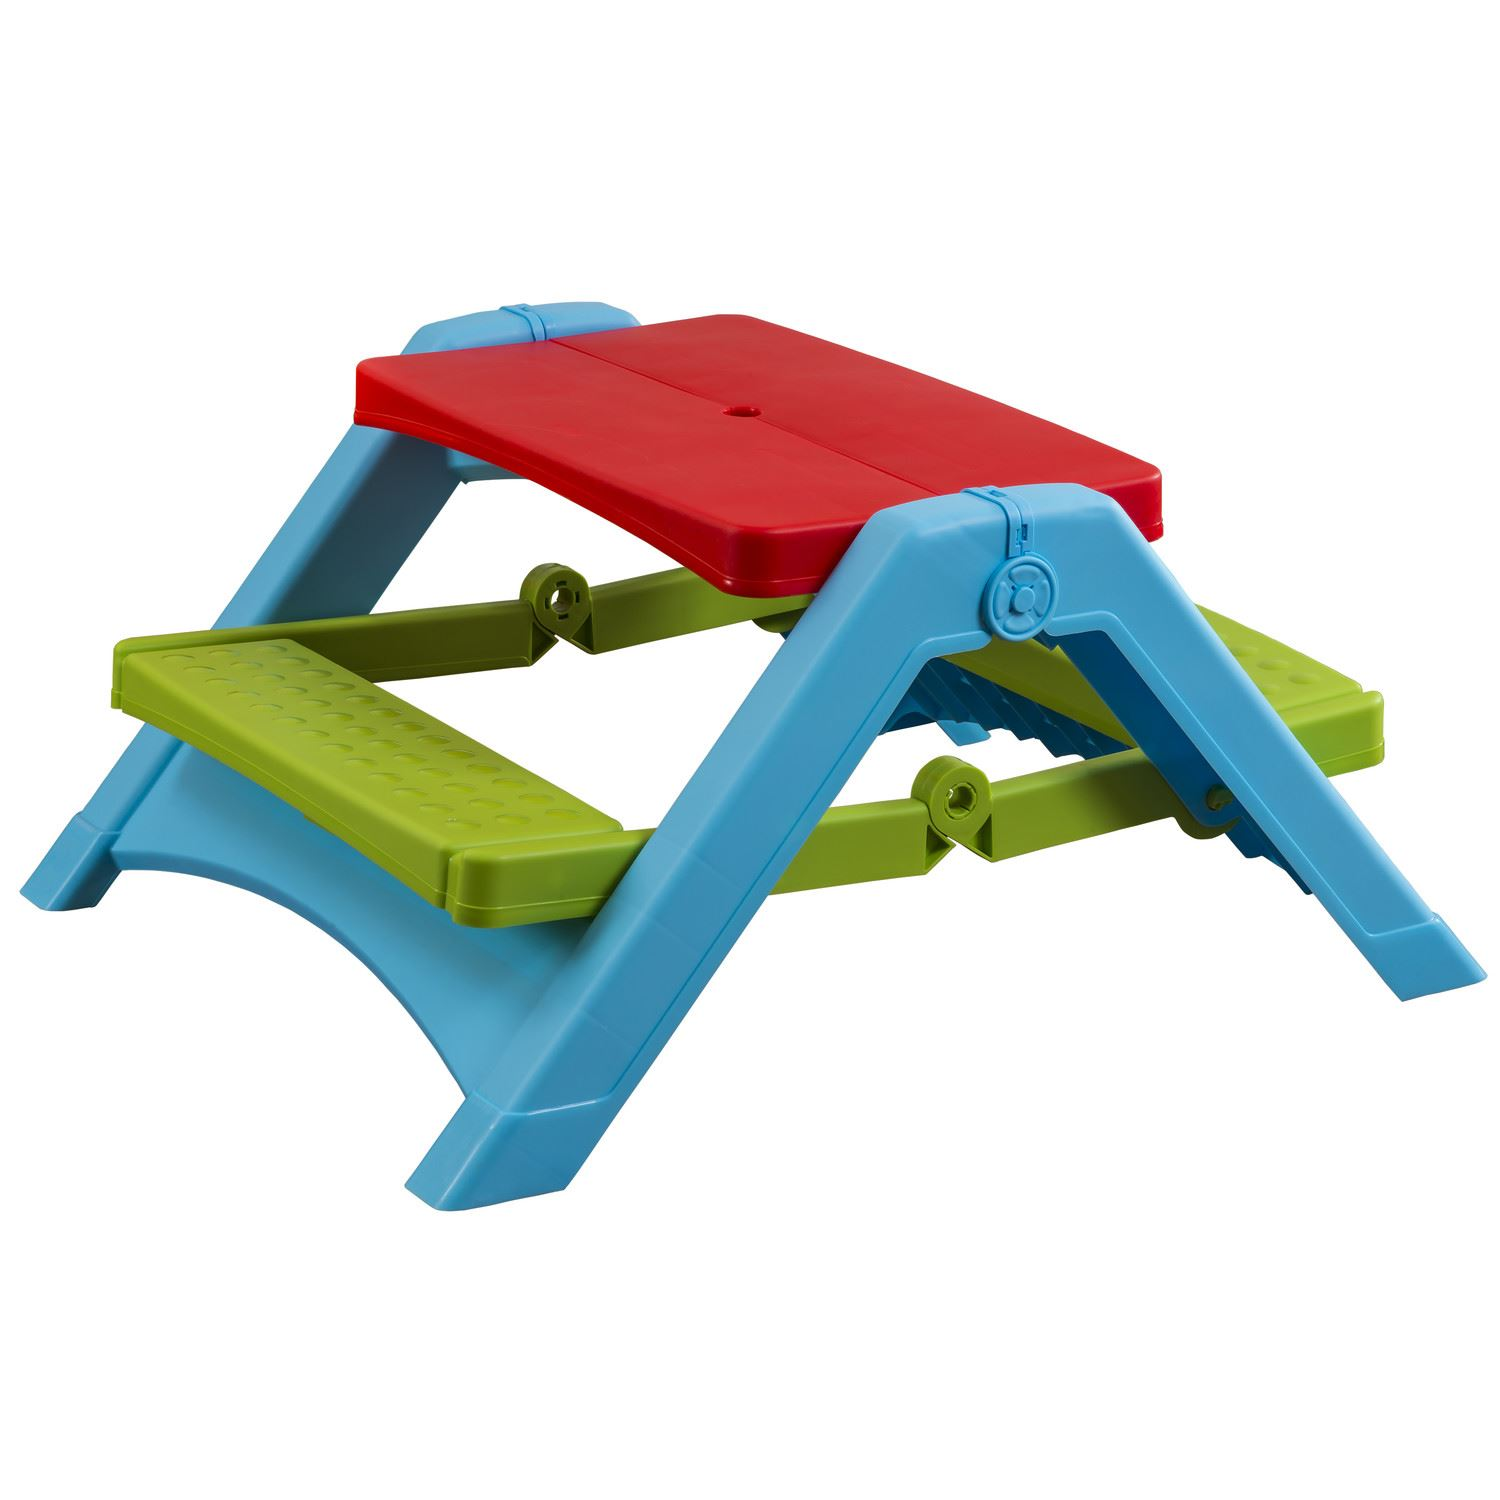 Kids PICNIC Camping Outdoor Bench Garden Furniture Indoor Children